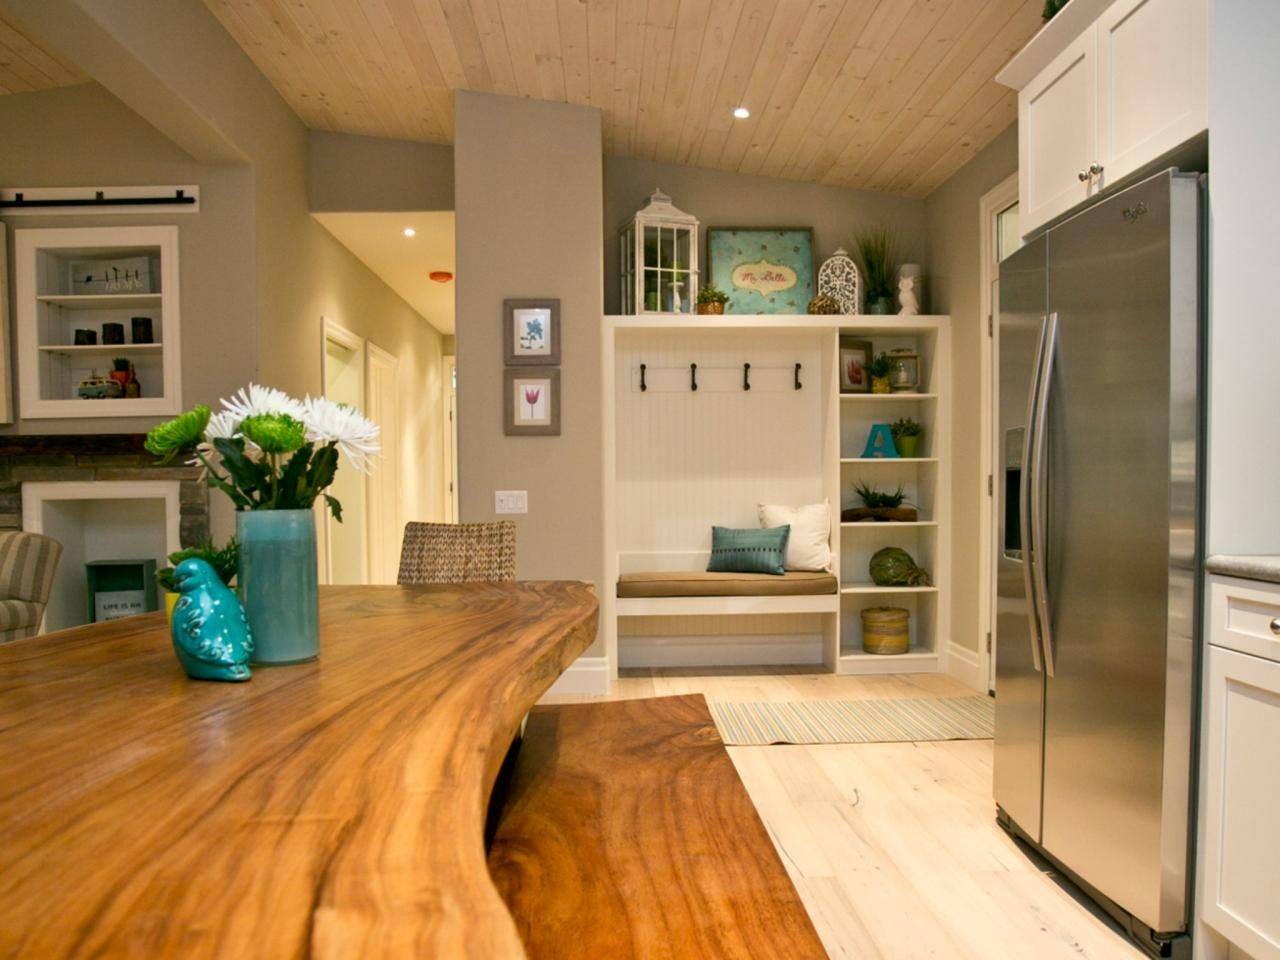 8 Pictures Of Stylish, Functional Mudrooms | Home Remodeling   Ideas For  Basements, Home